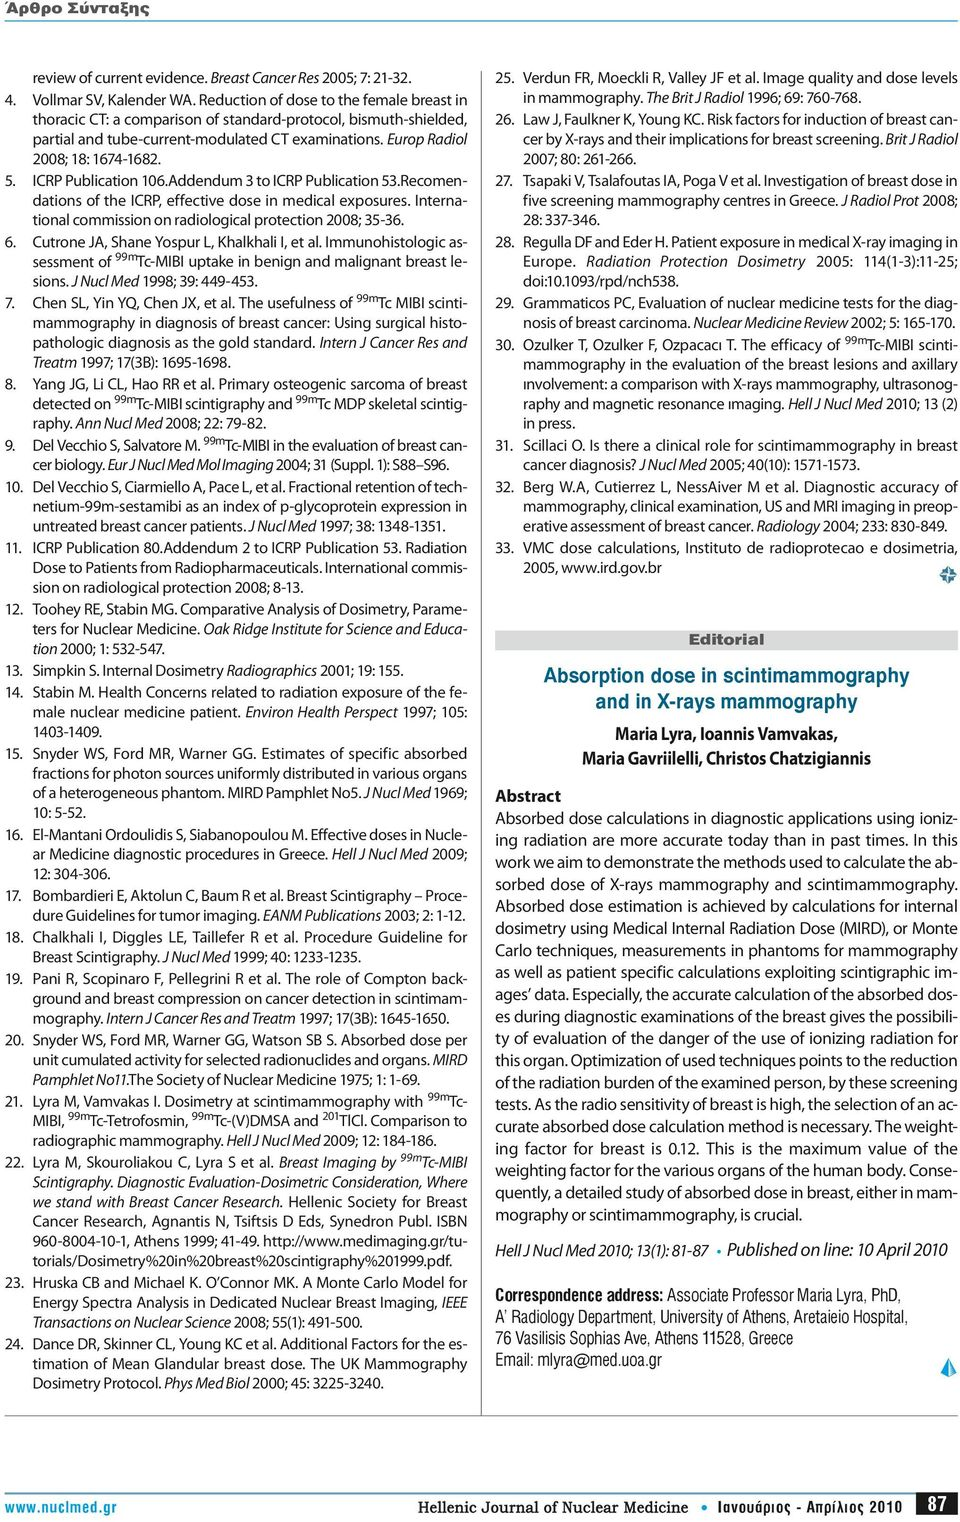 ICRP Publication 106.Addendum 3 to ICRP Publication 53.Recomendations of the ICRP, effective dose in medical exposures. International commission on radiological protection 2008; 35-36. 6.